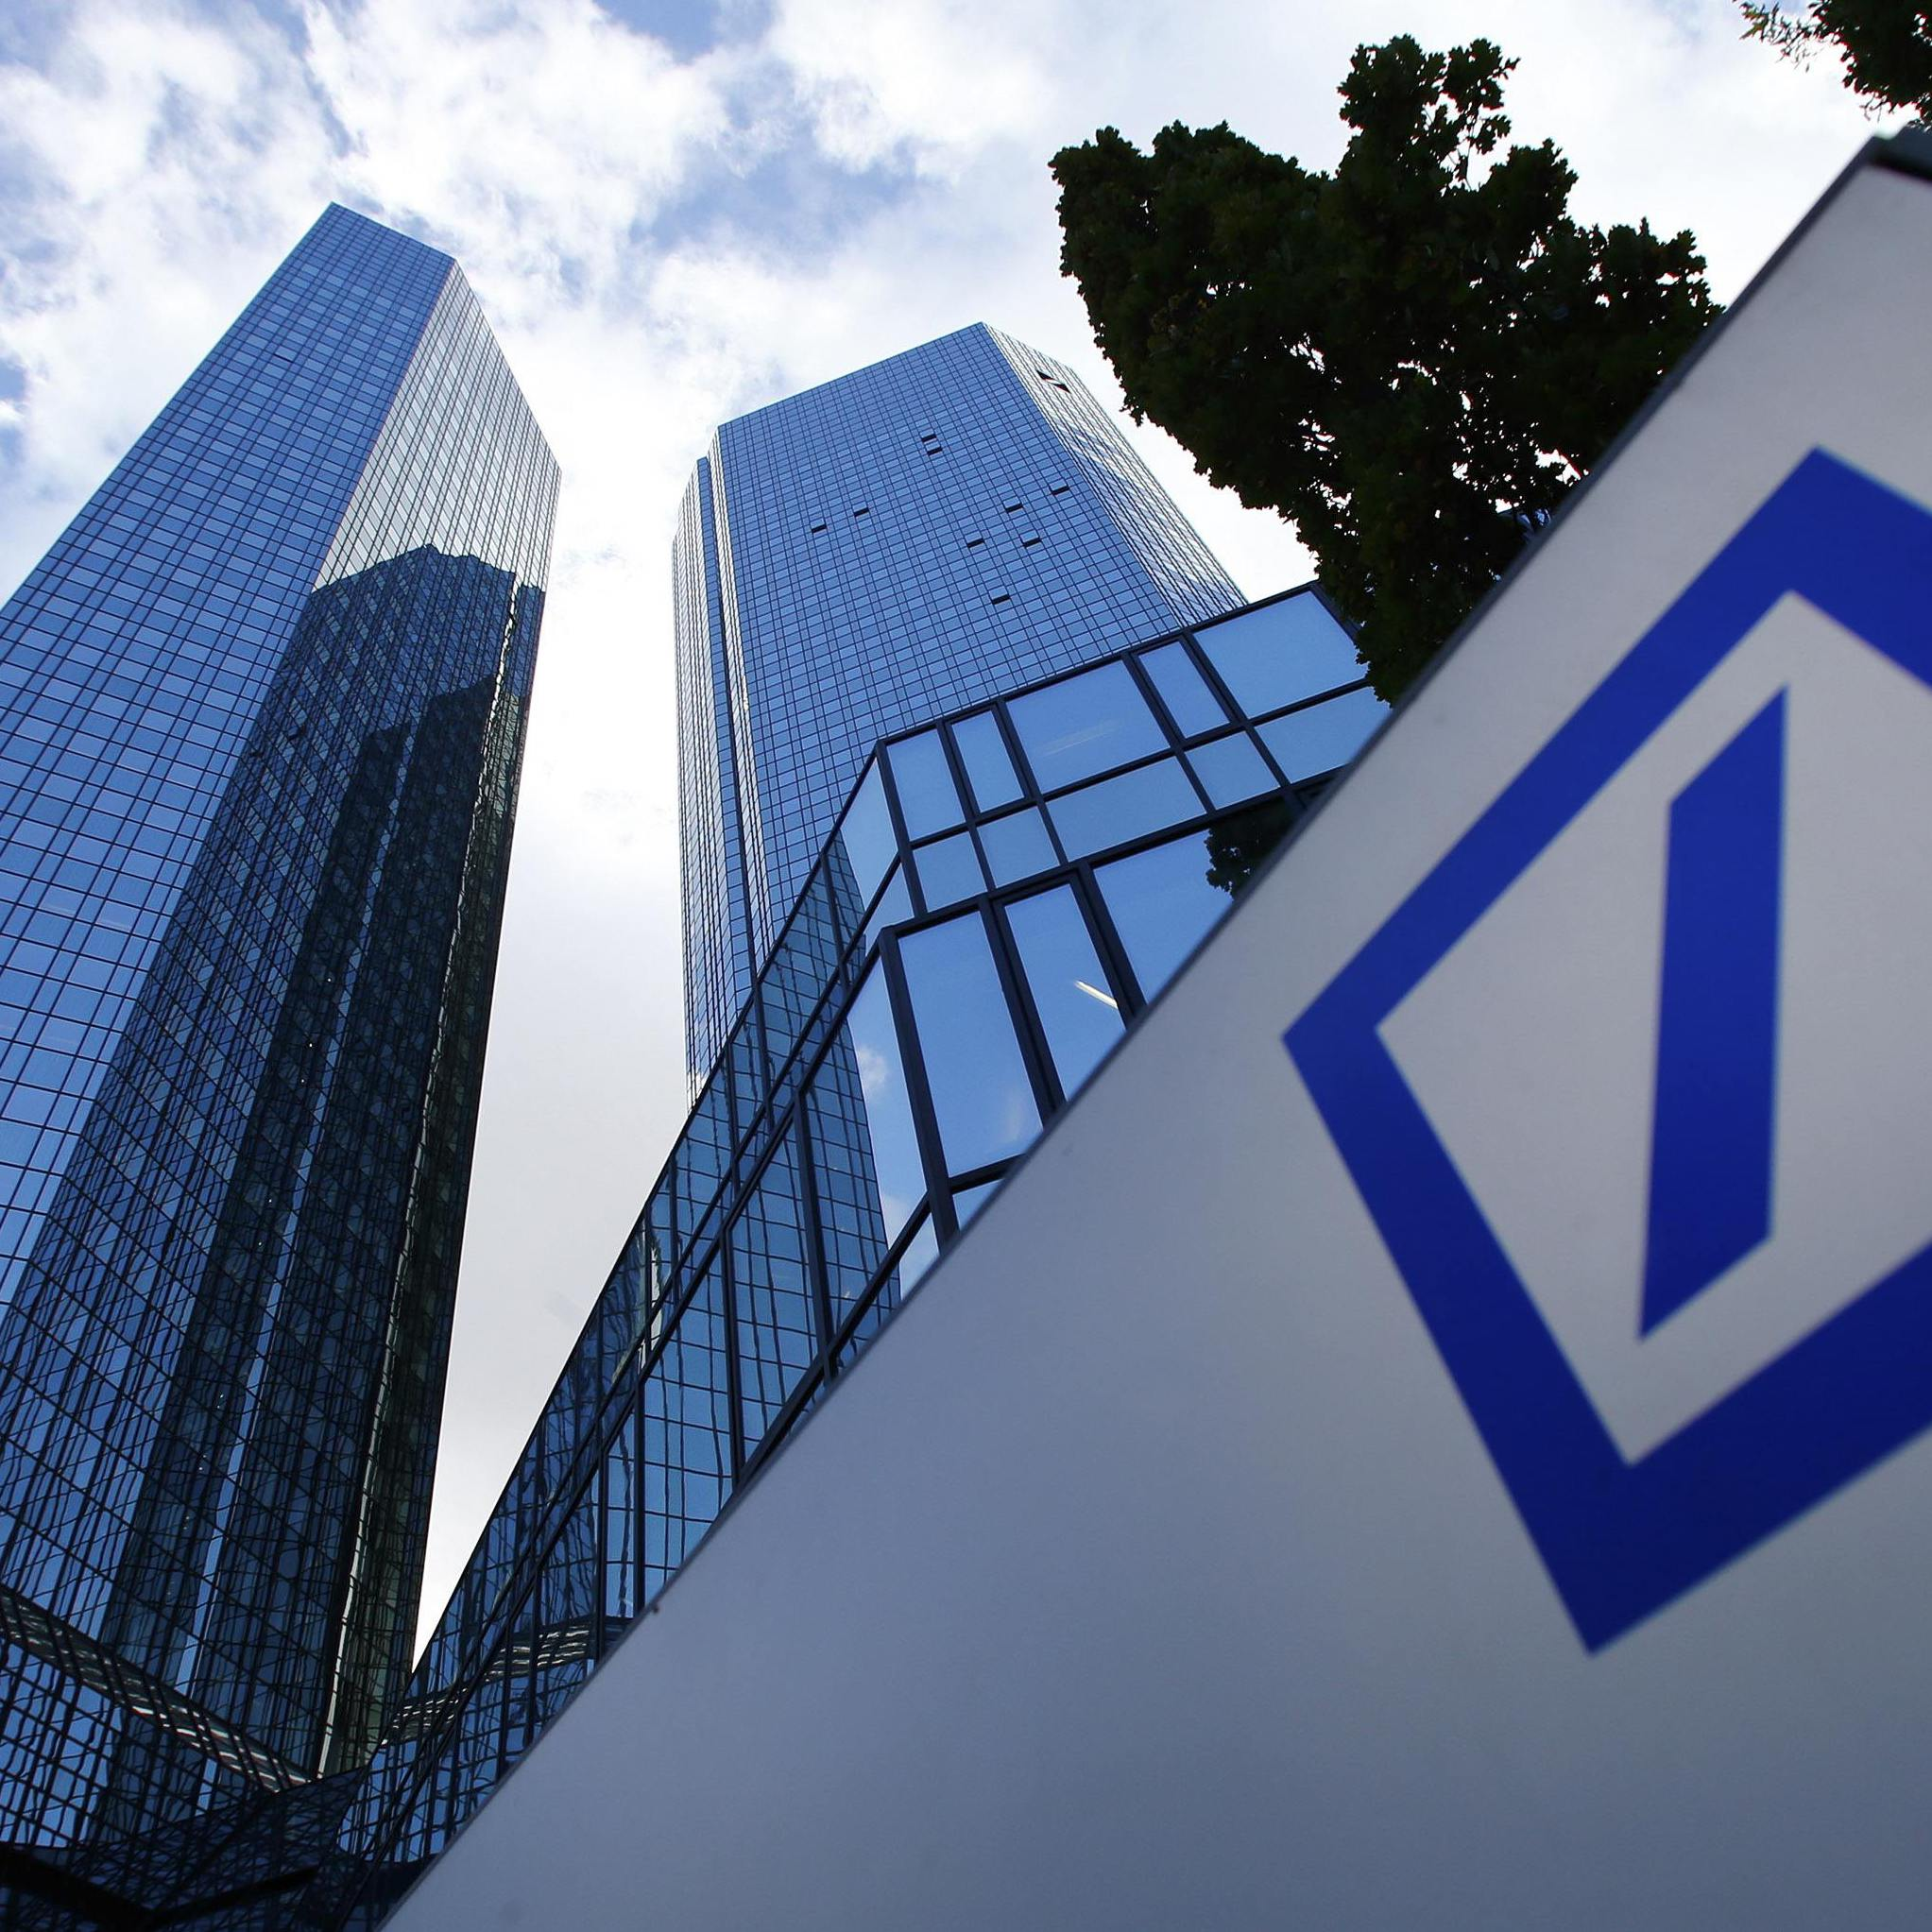 Oficinas corporativas del deutsche bank mind the sound for Deutsche bank oficinas